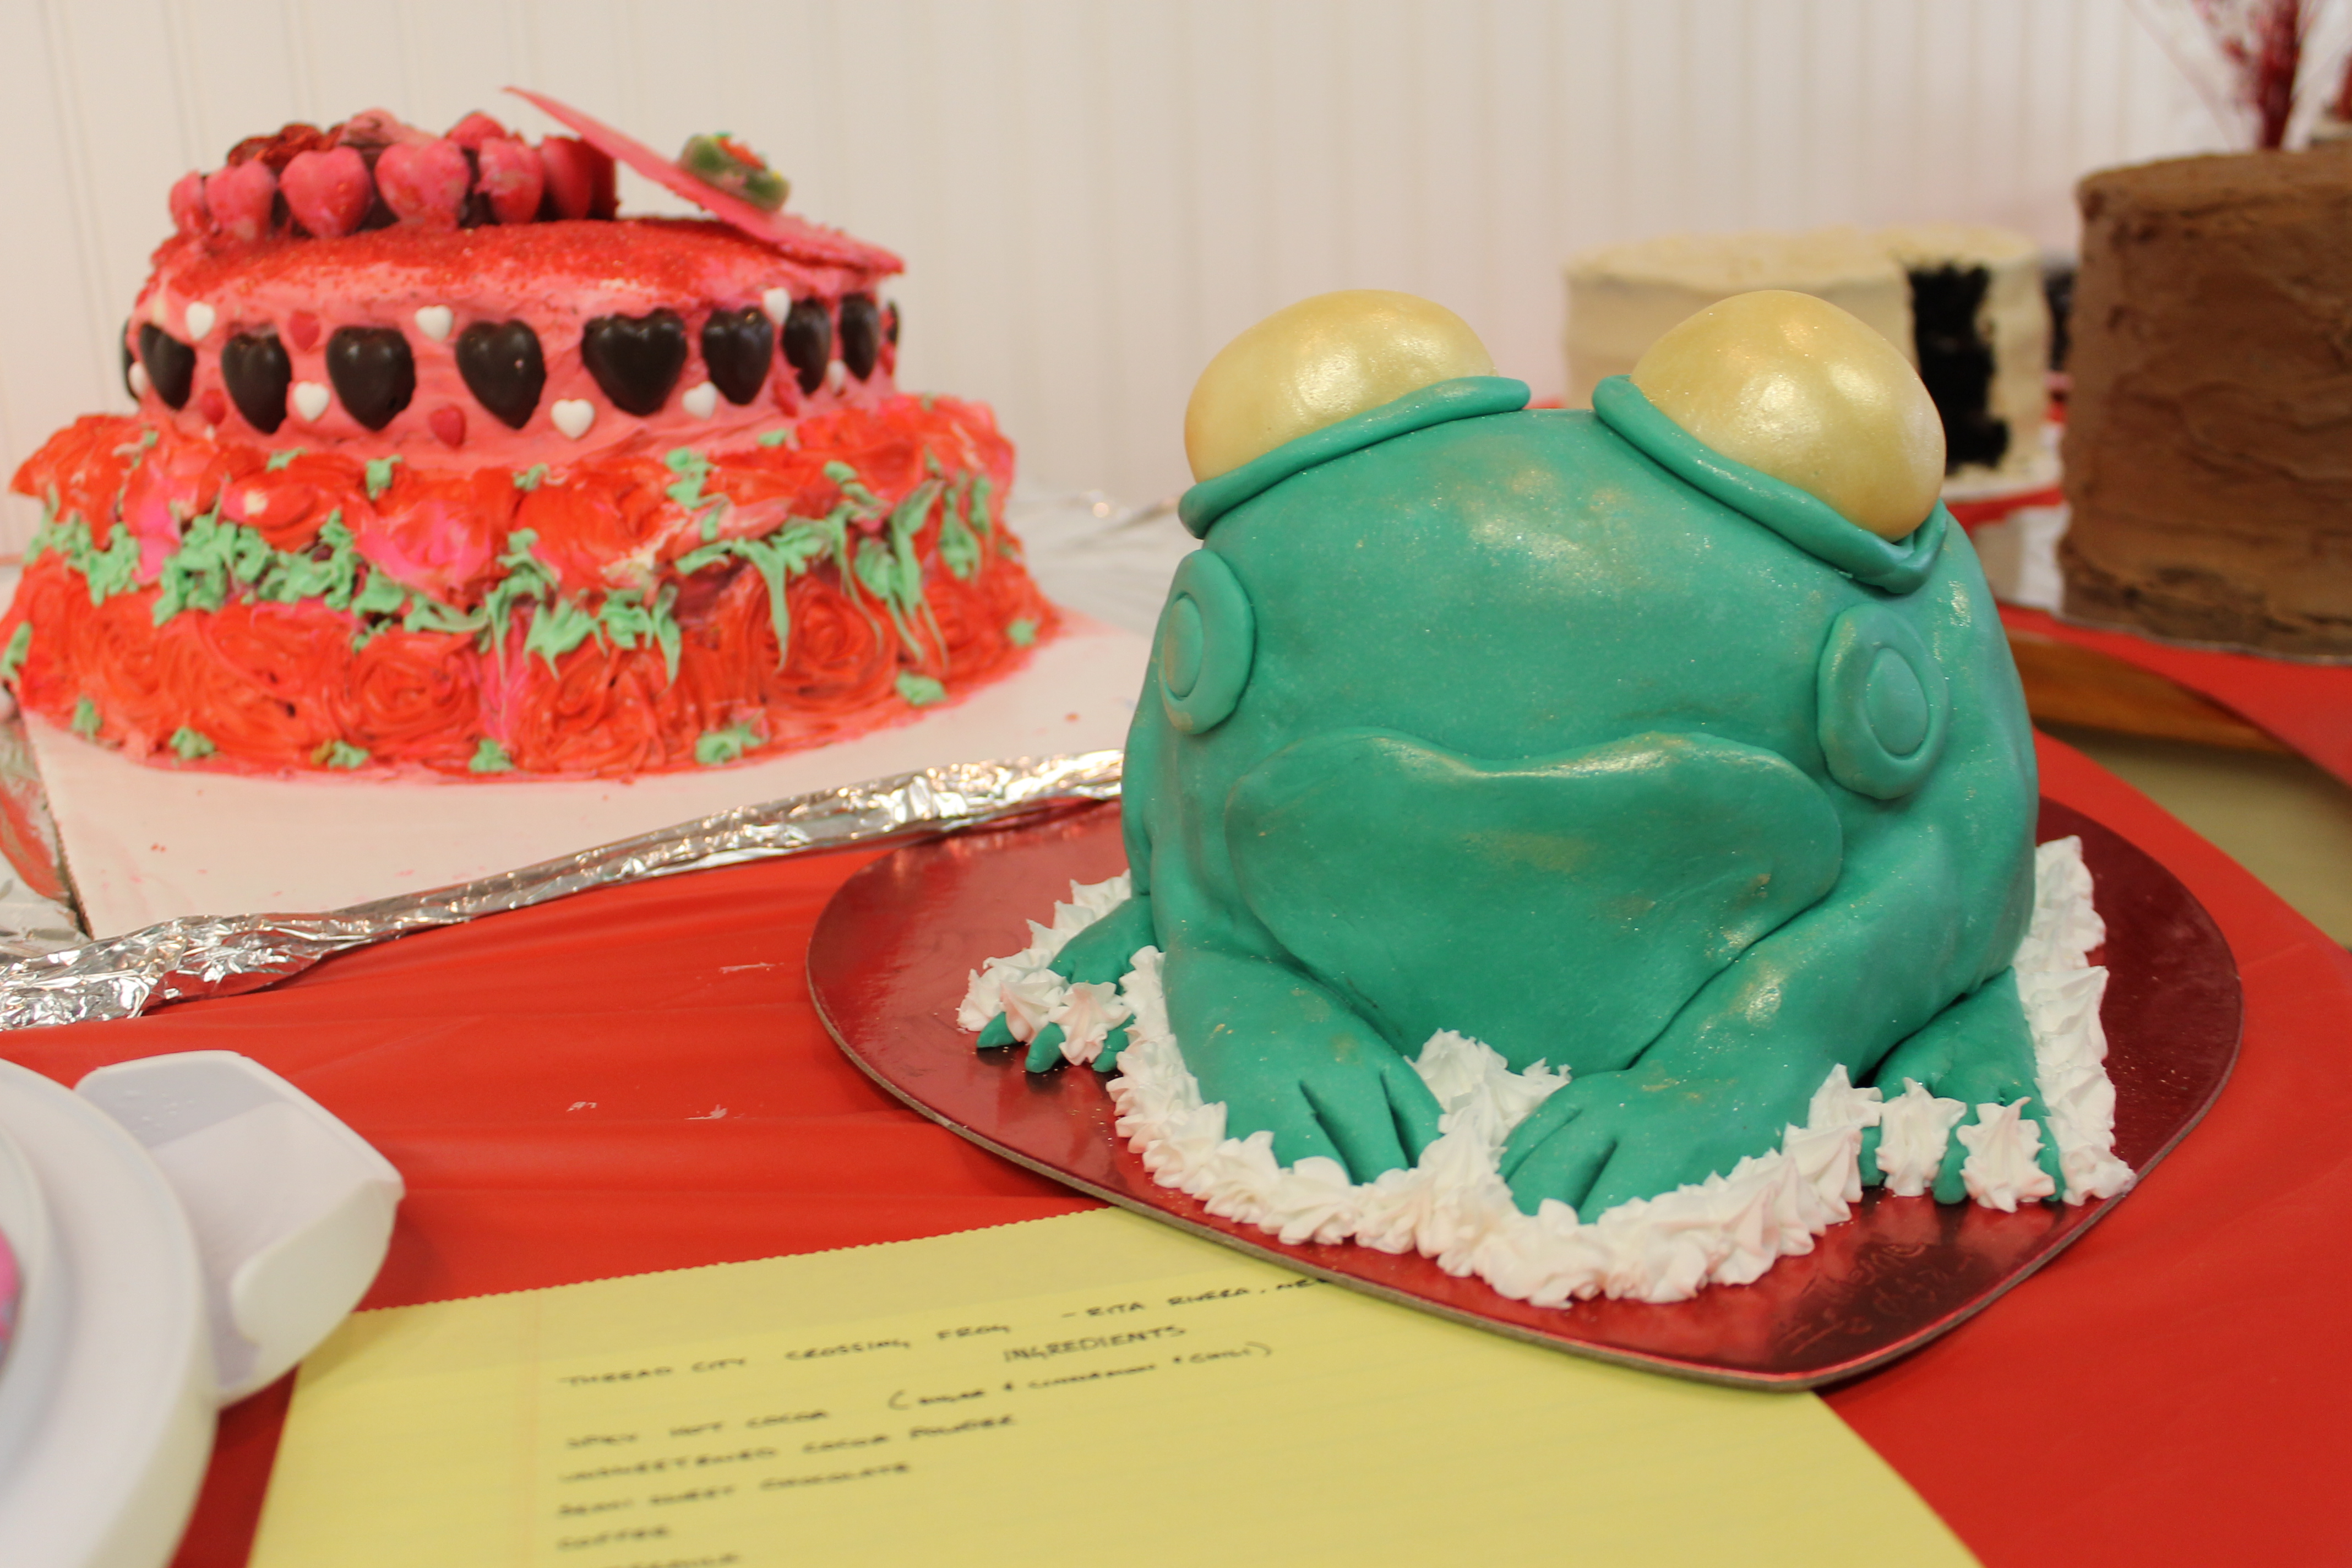 Frog shaped chocolate cake entry to cake baking contest